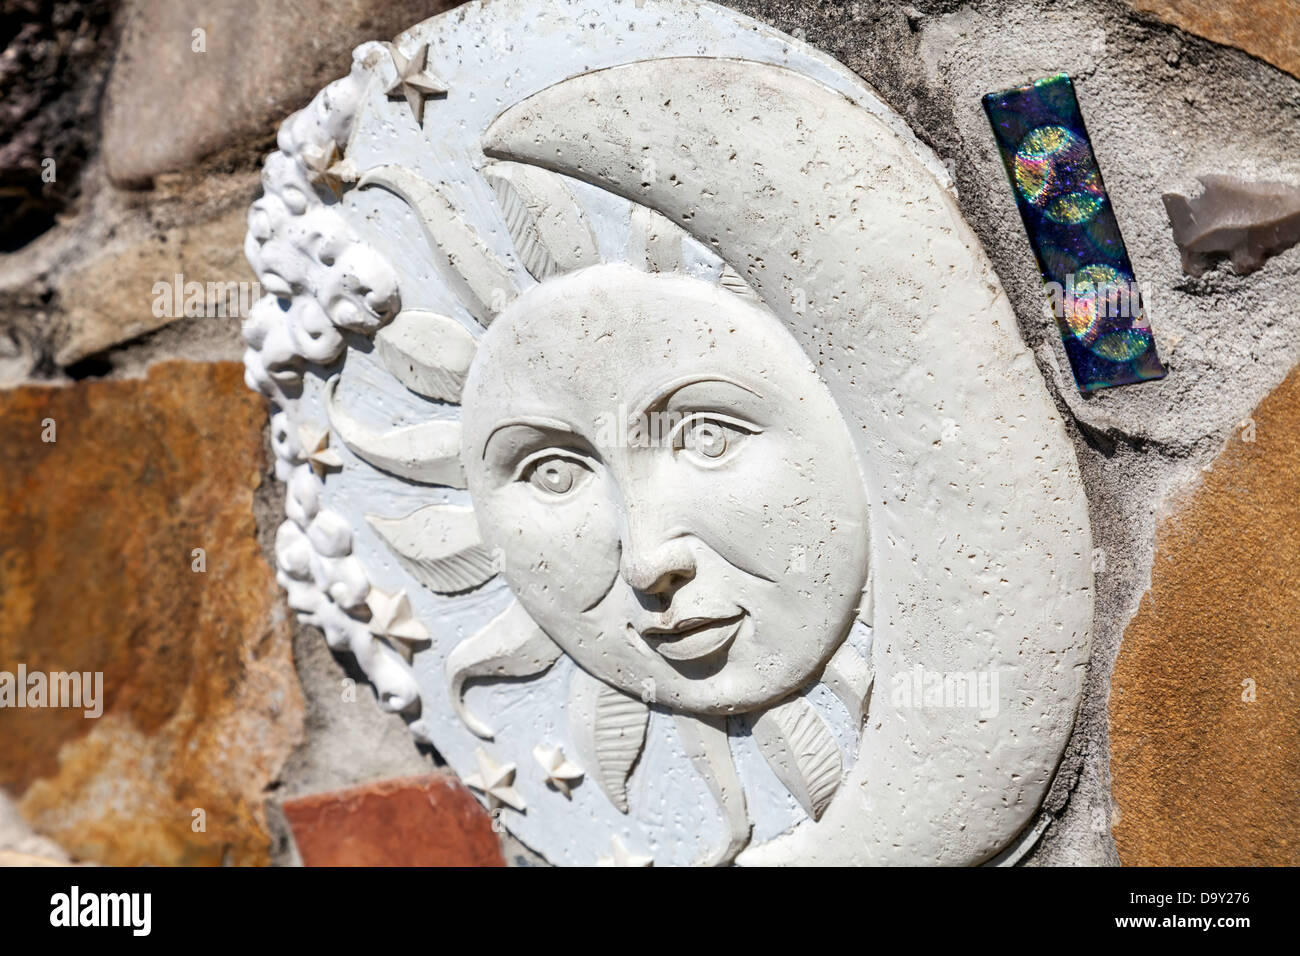 Sculptural Art And Ceramic Tiles Embedded In A Stone Wall Surrounding Stock Photo Alamy